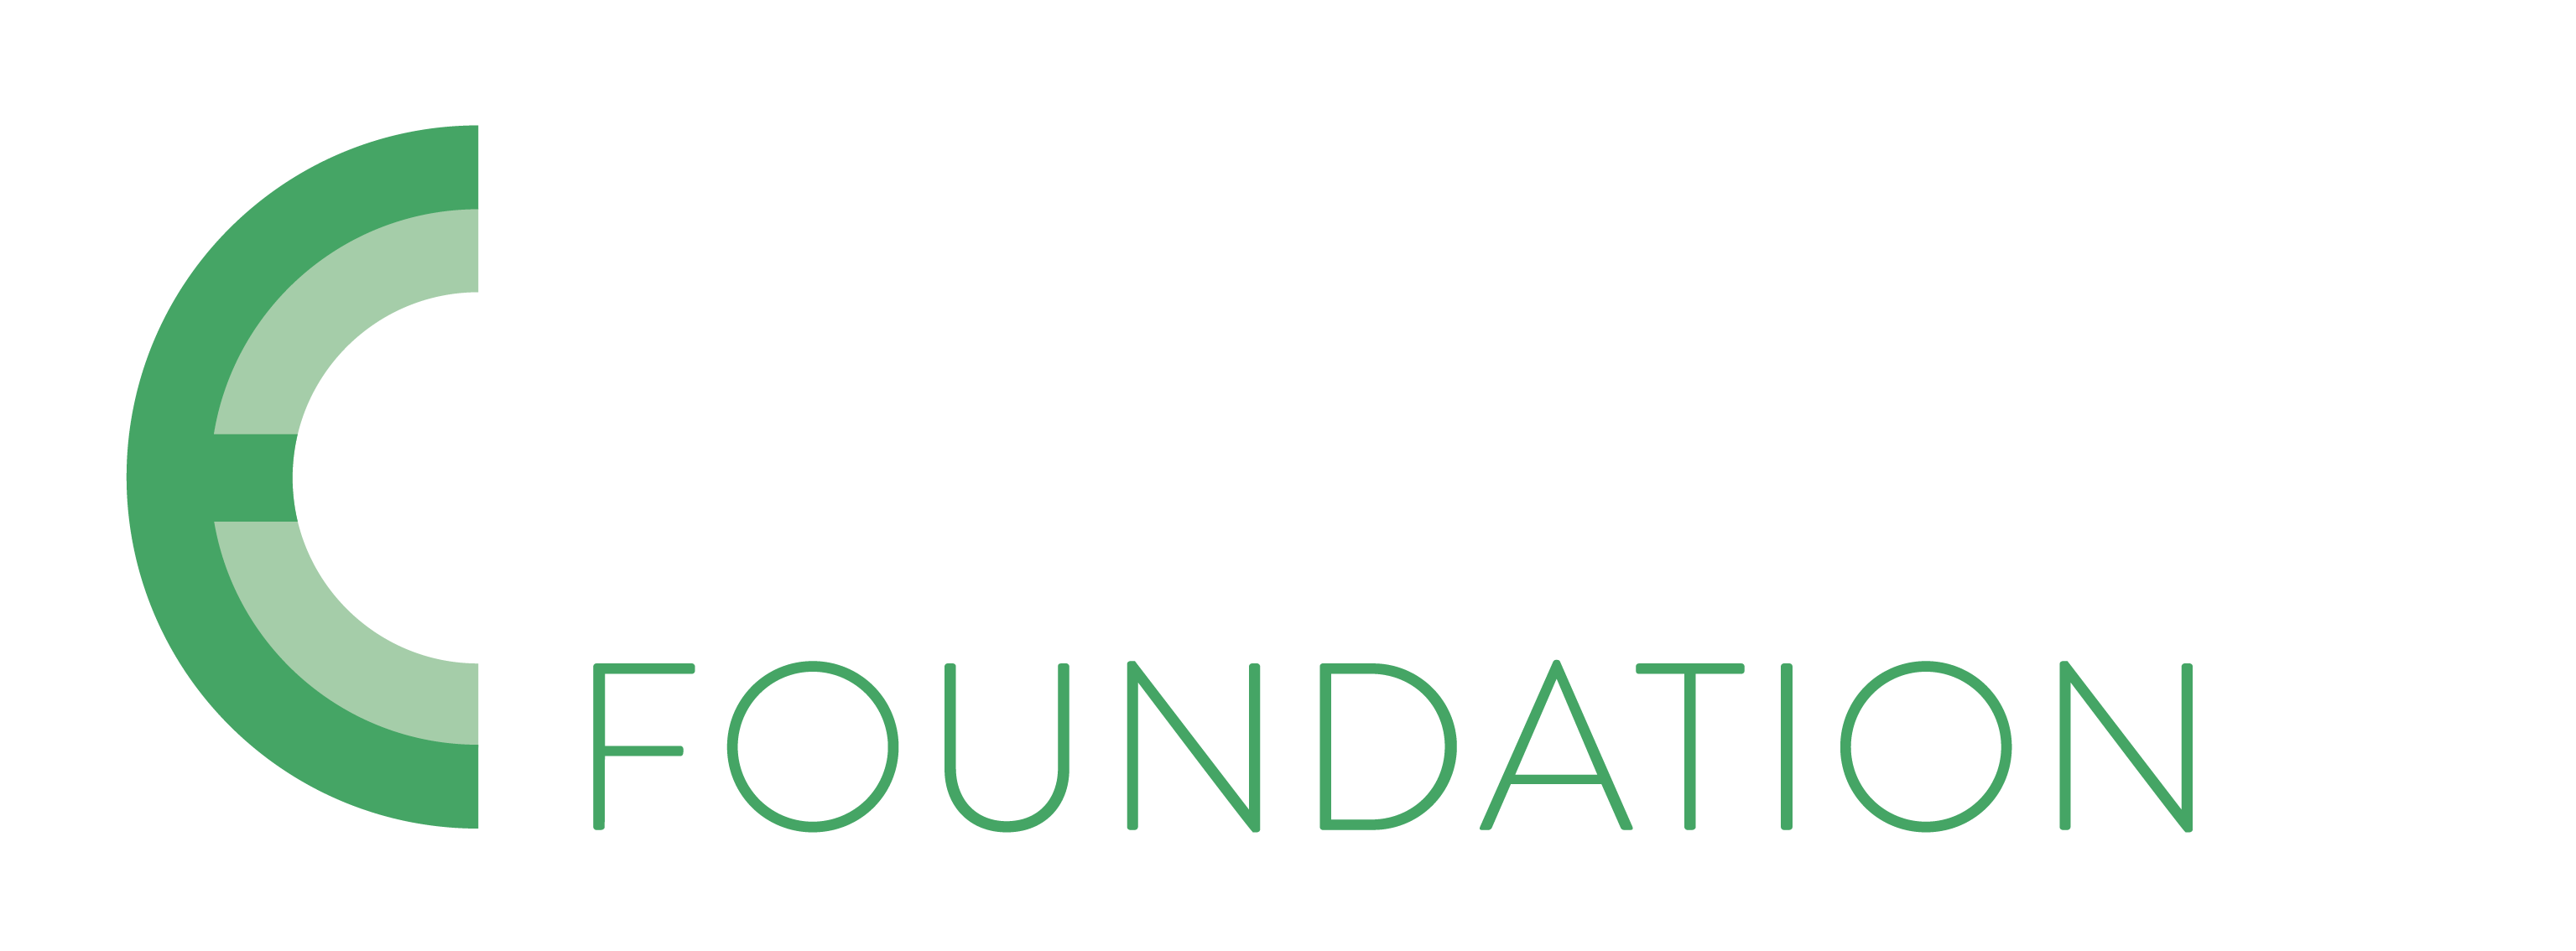 The Early Careers Foundation